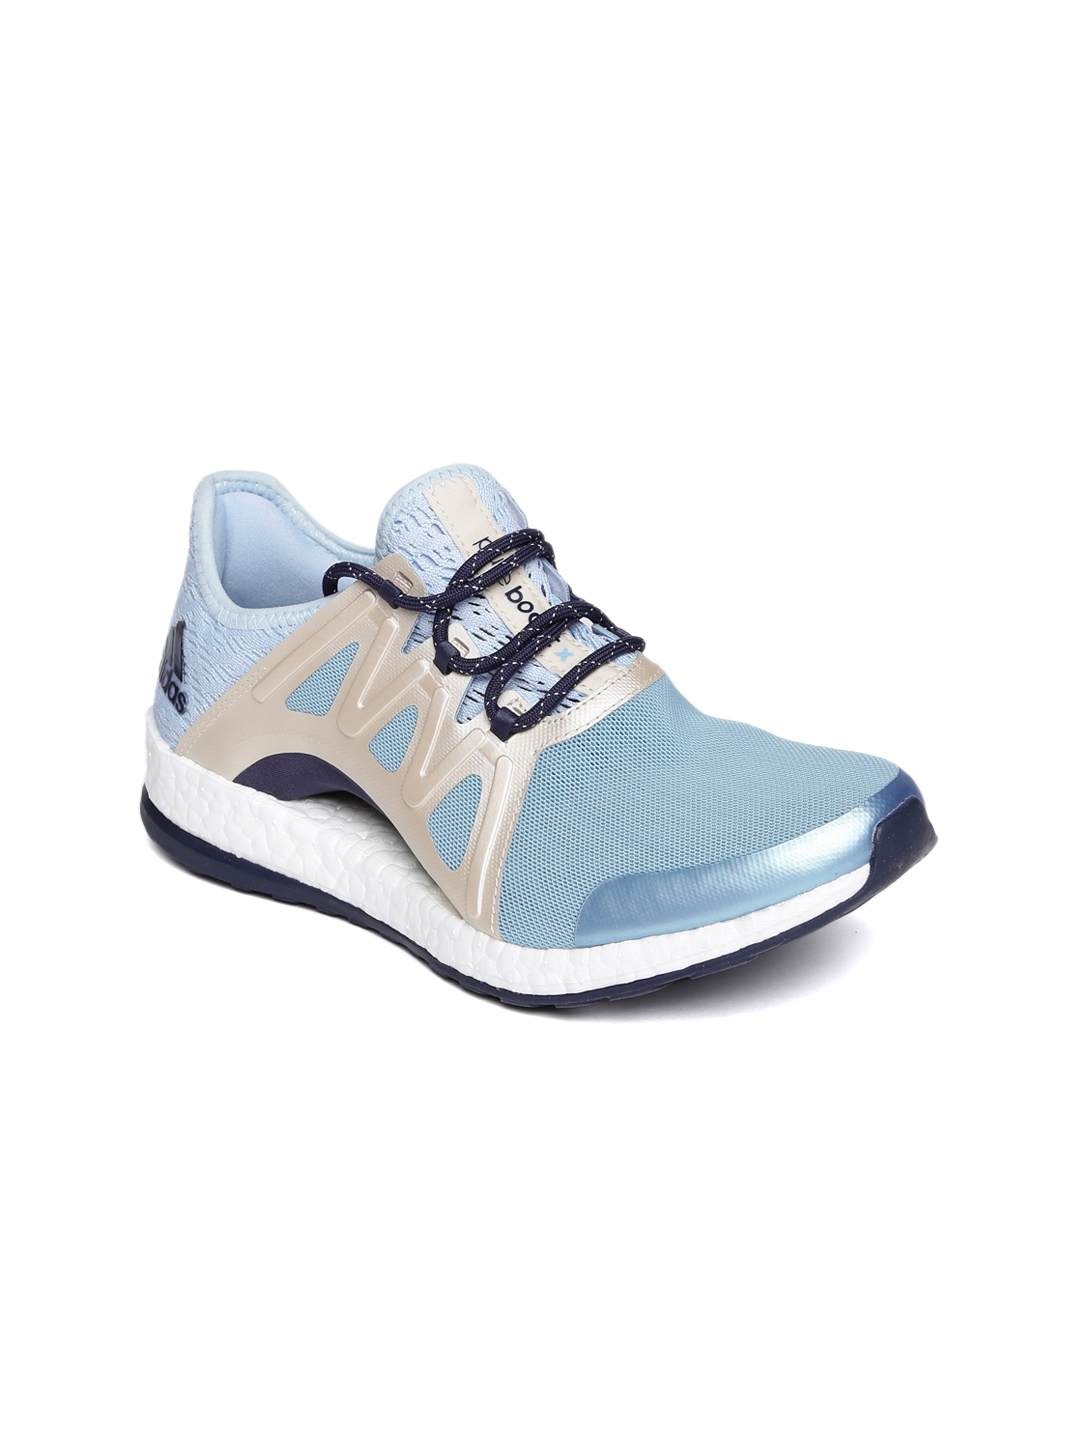 36892571e Buy ADIDAS Women Blue Pureboost Xpose Running Shoes - Sports Shoes ...